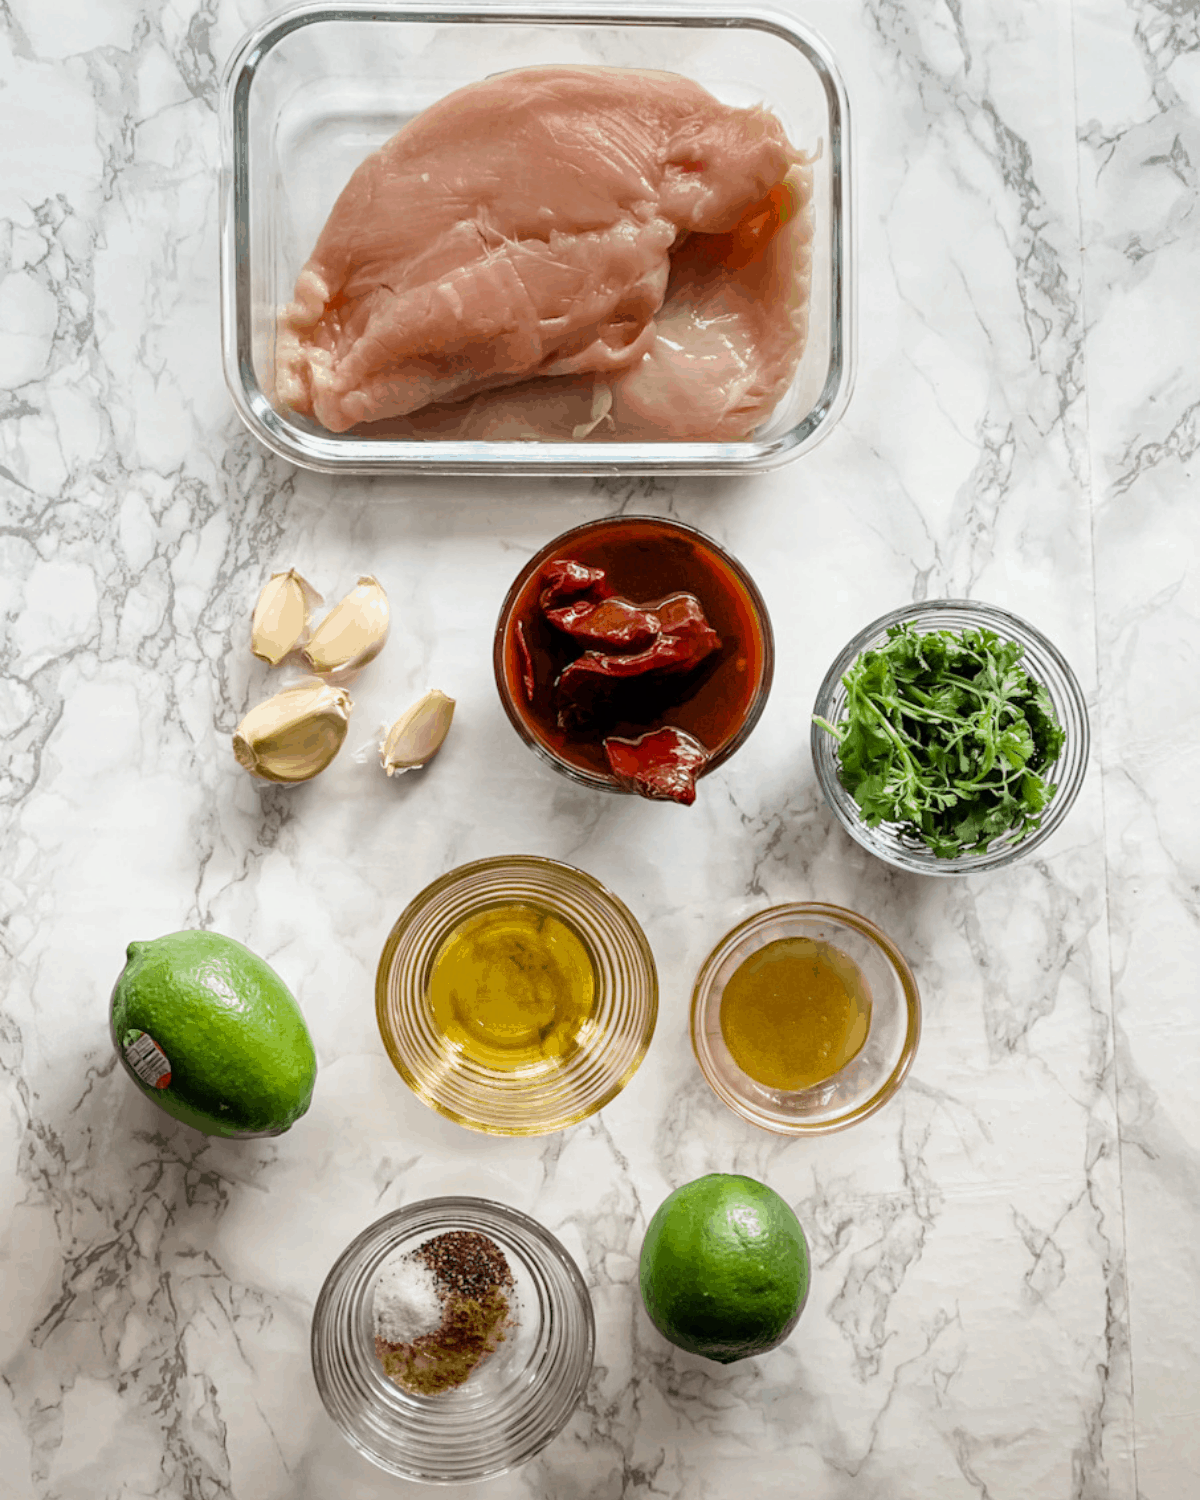 ingredients to make chipotle grilled chicken.